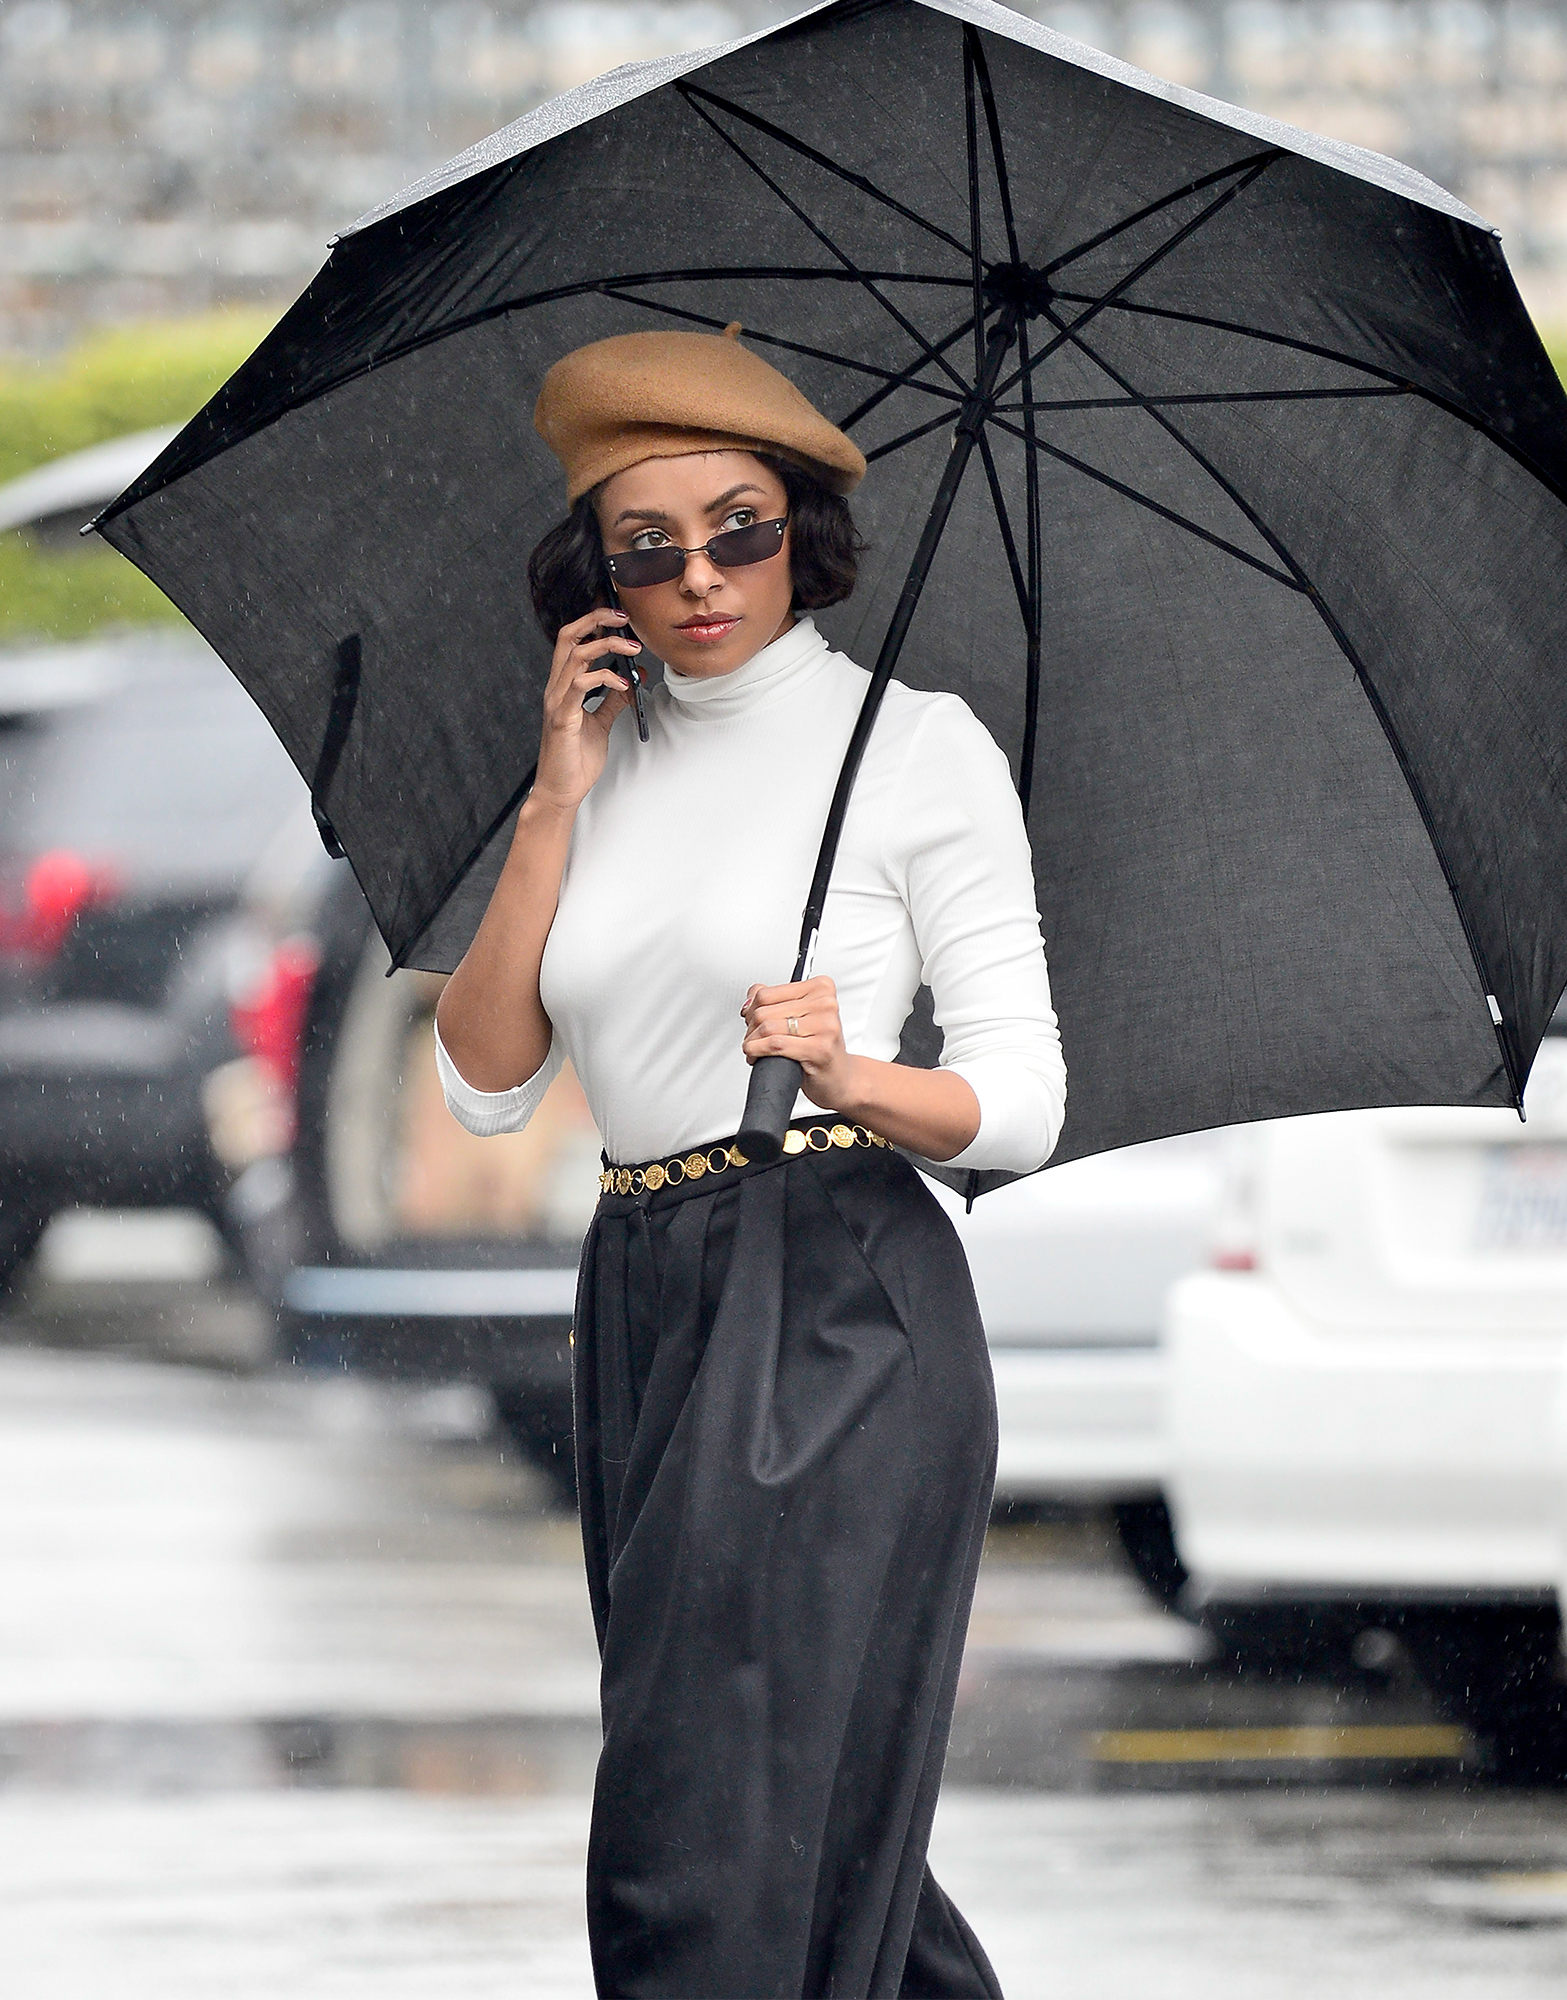 EXCLUSIVE: Kat Graham gets caught in the rain whilst on a photoshoot